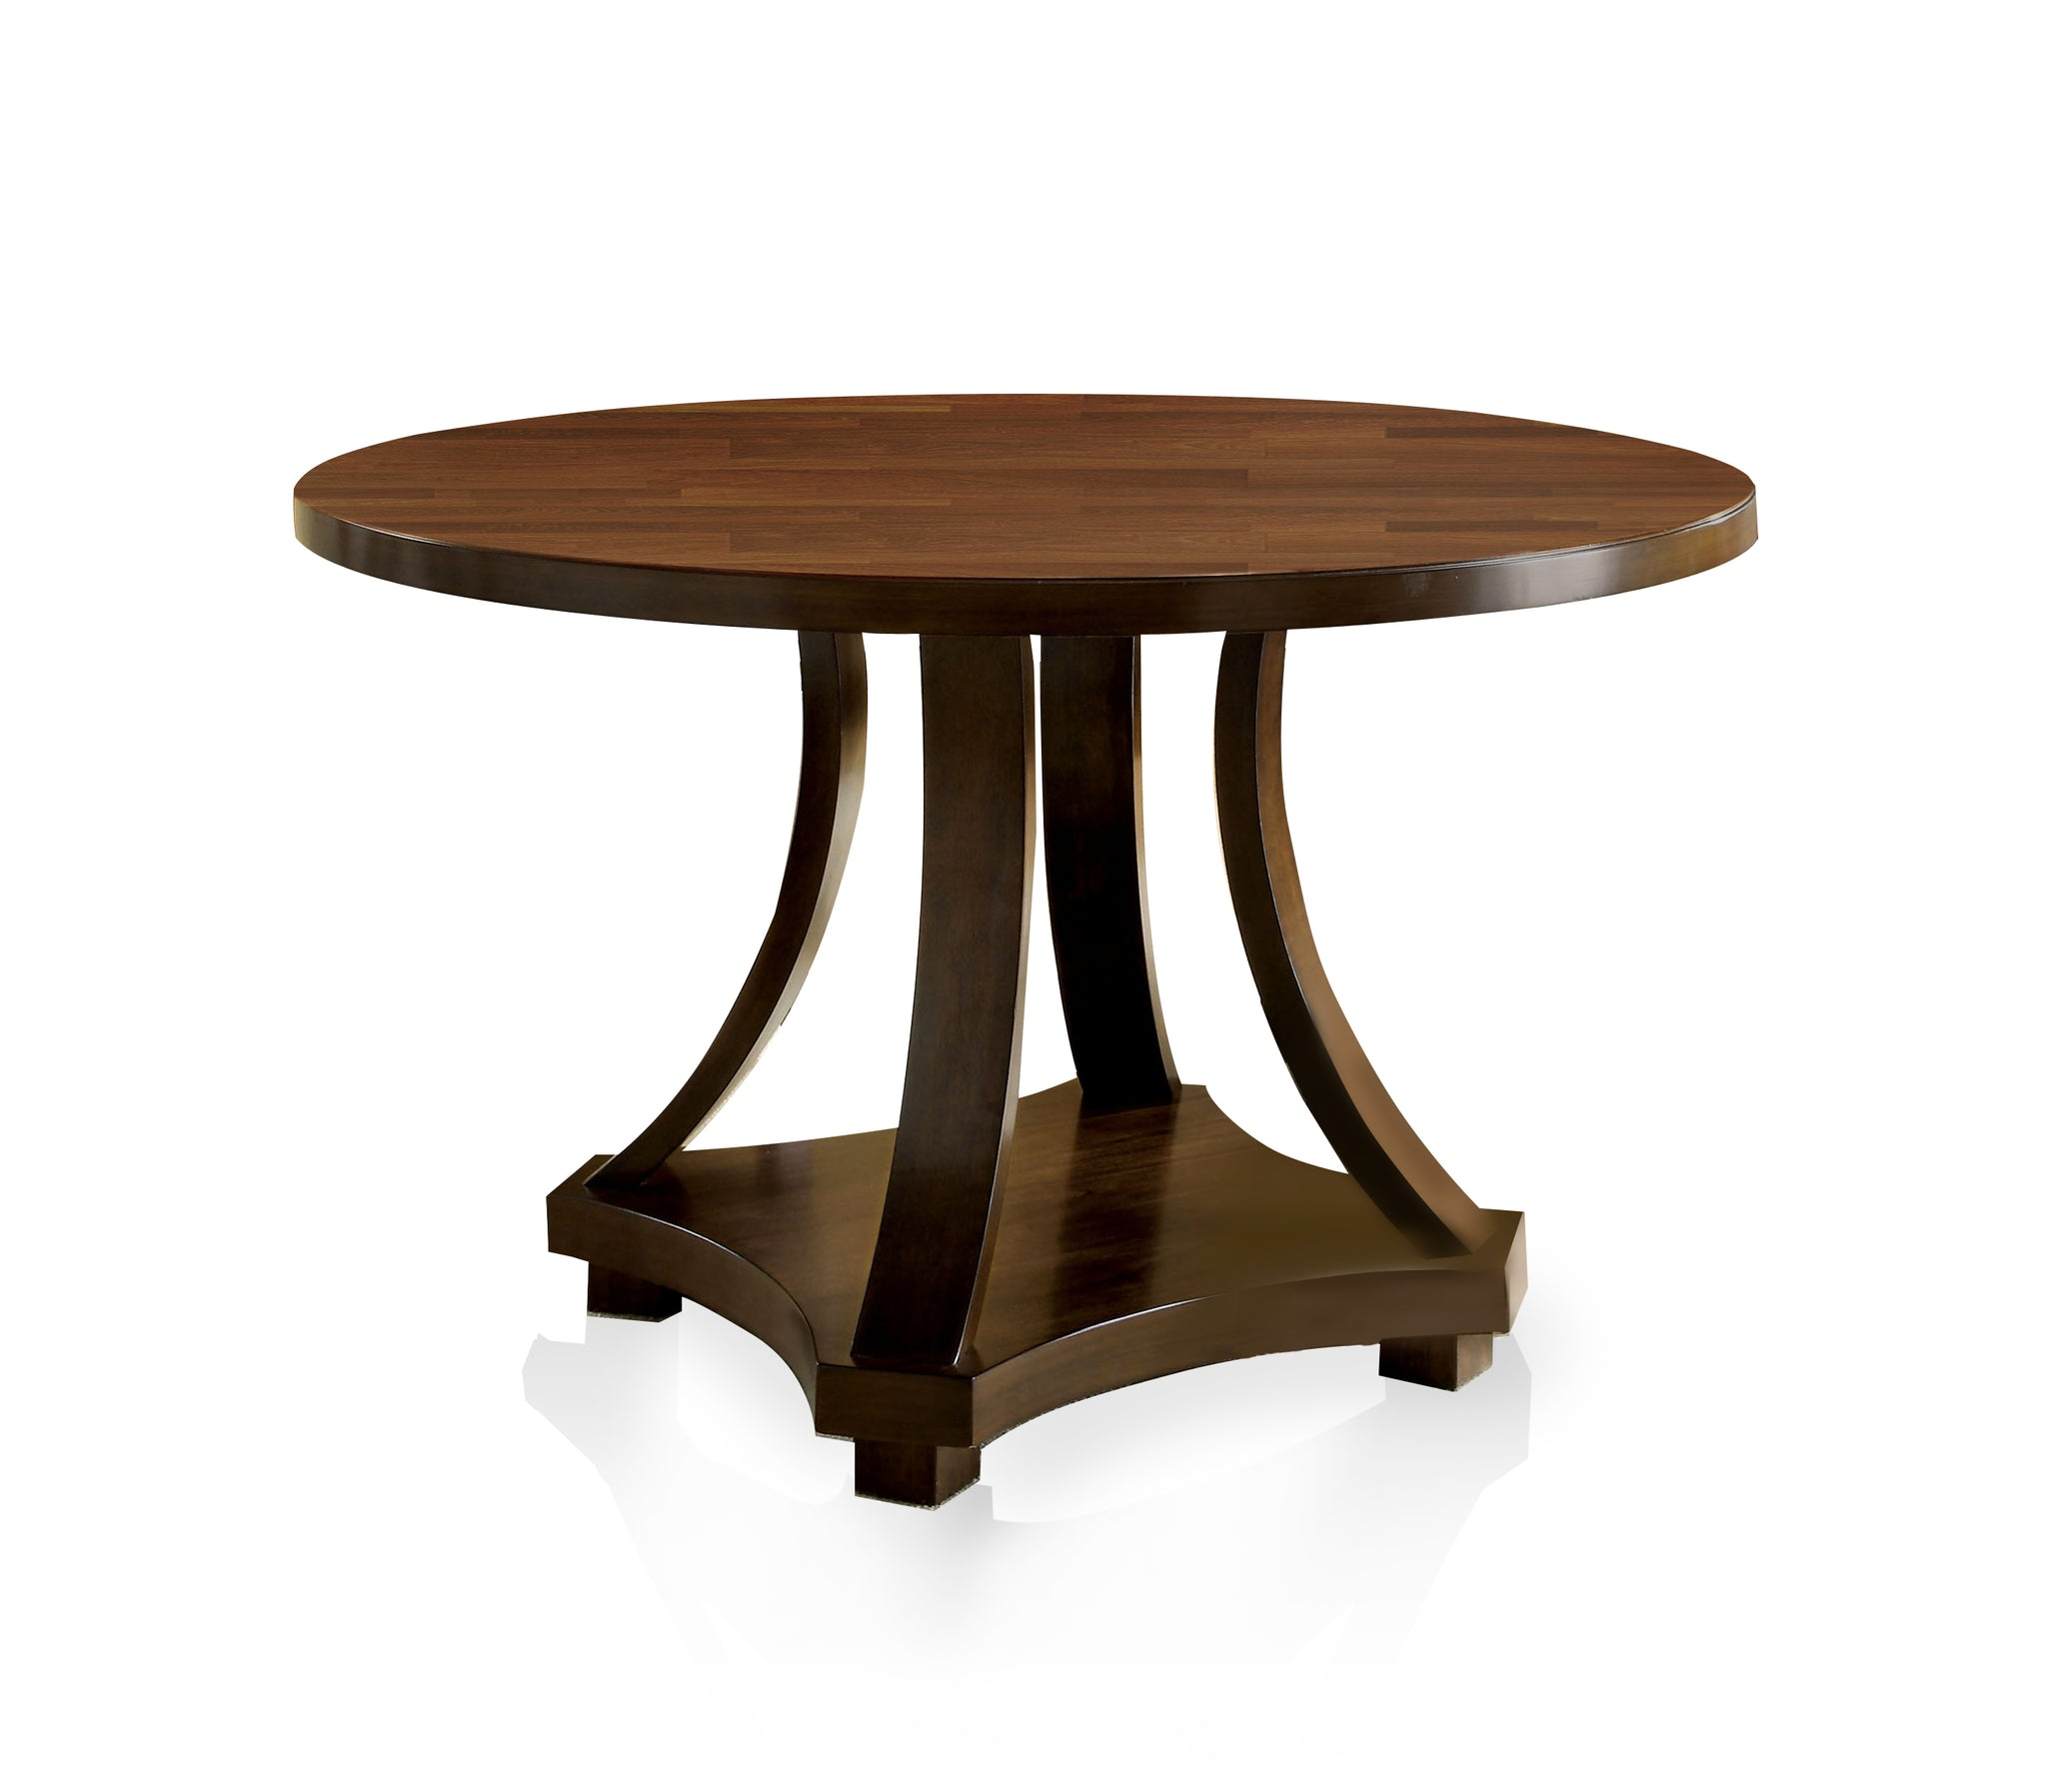 Restin Transitional Round Dining Table